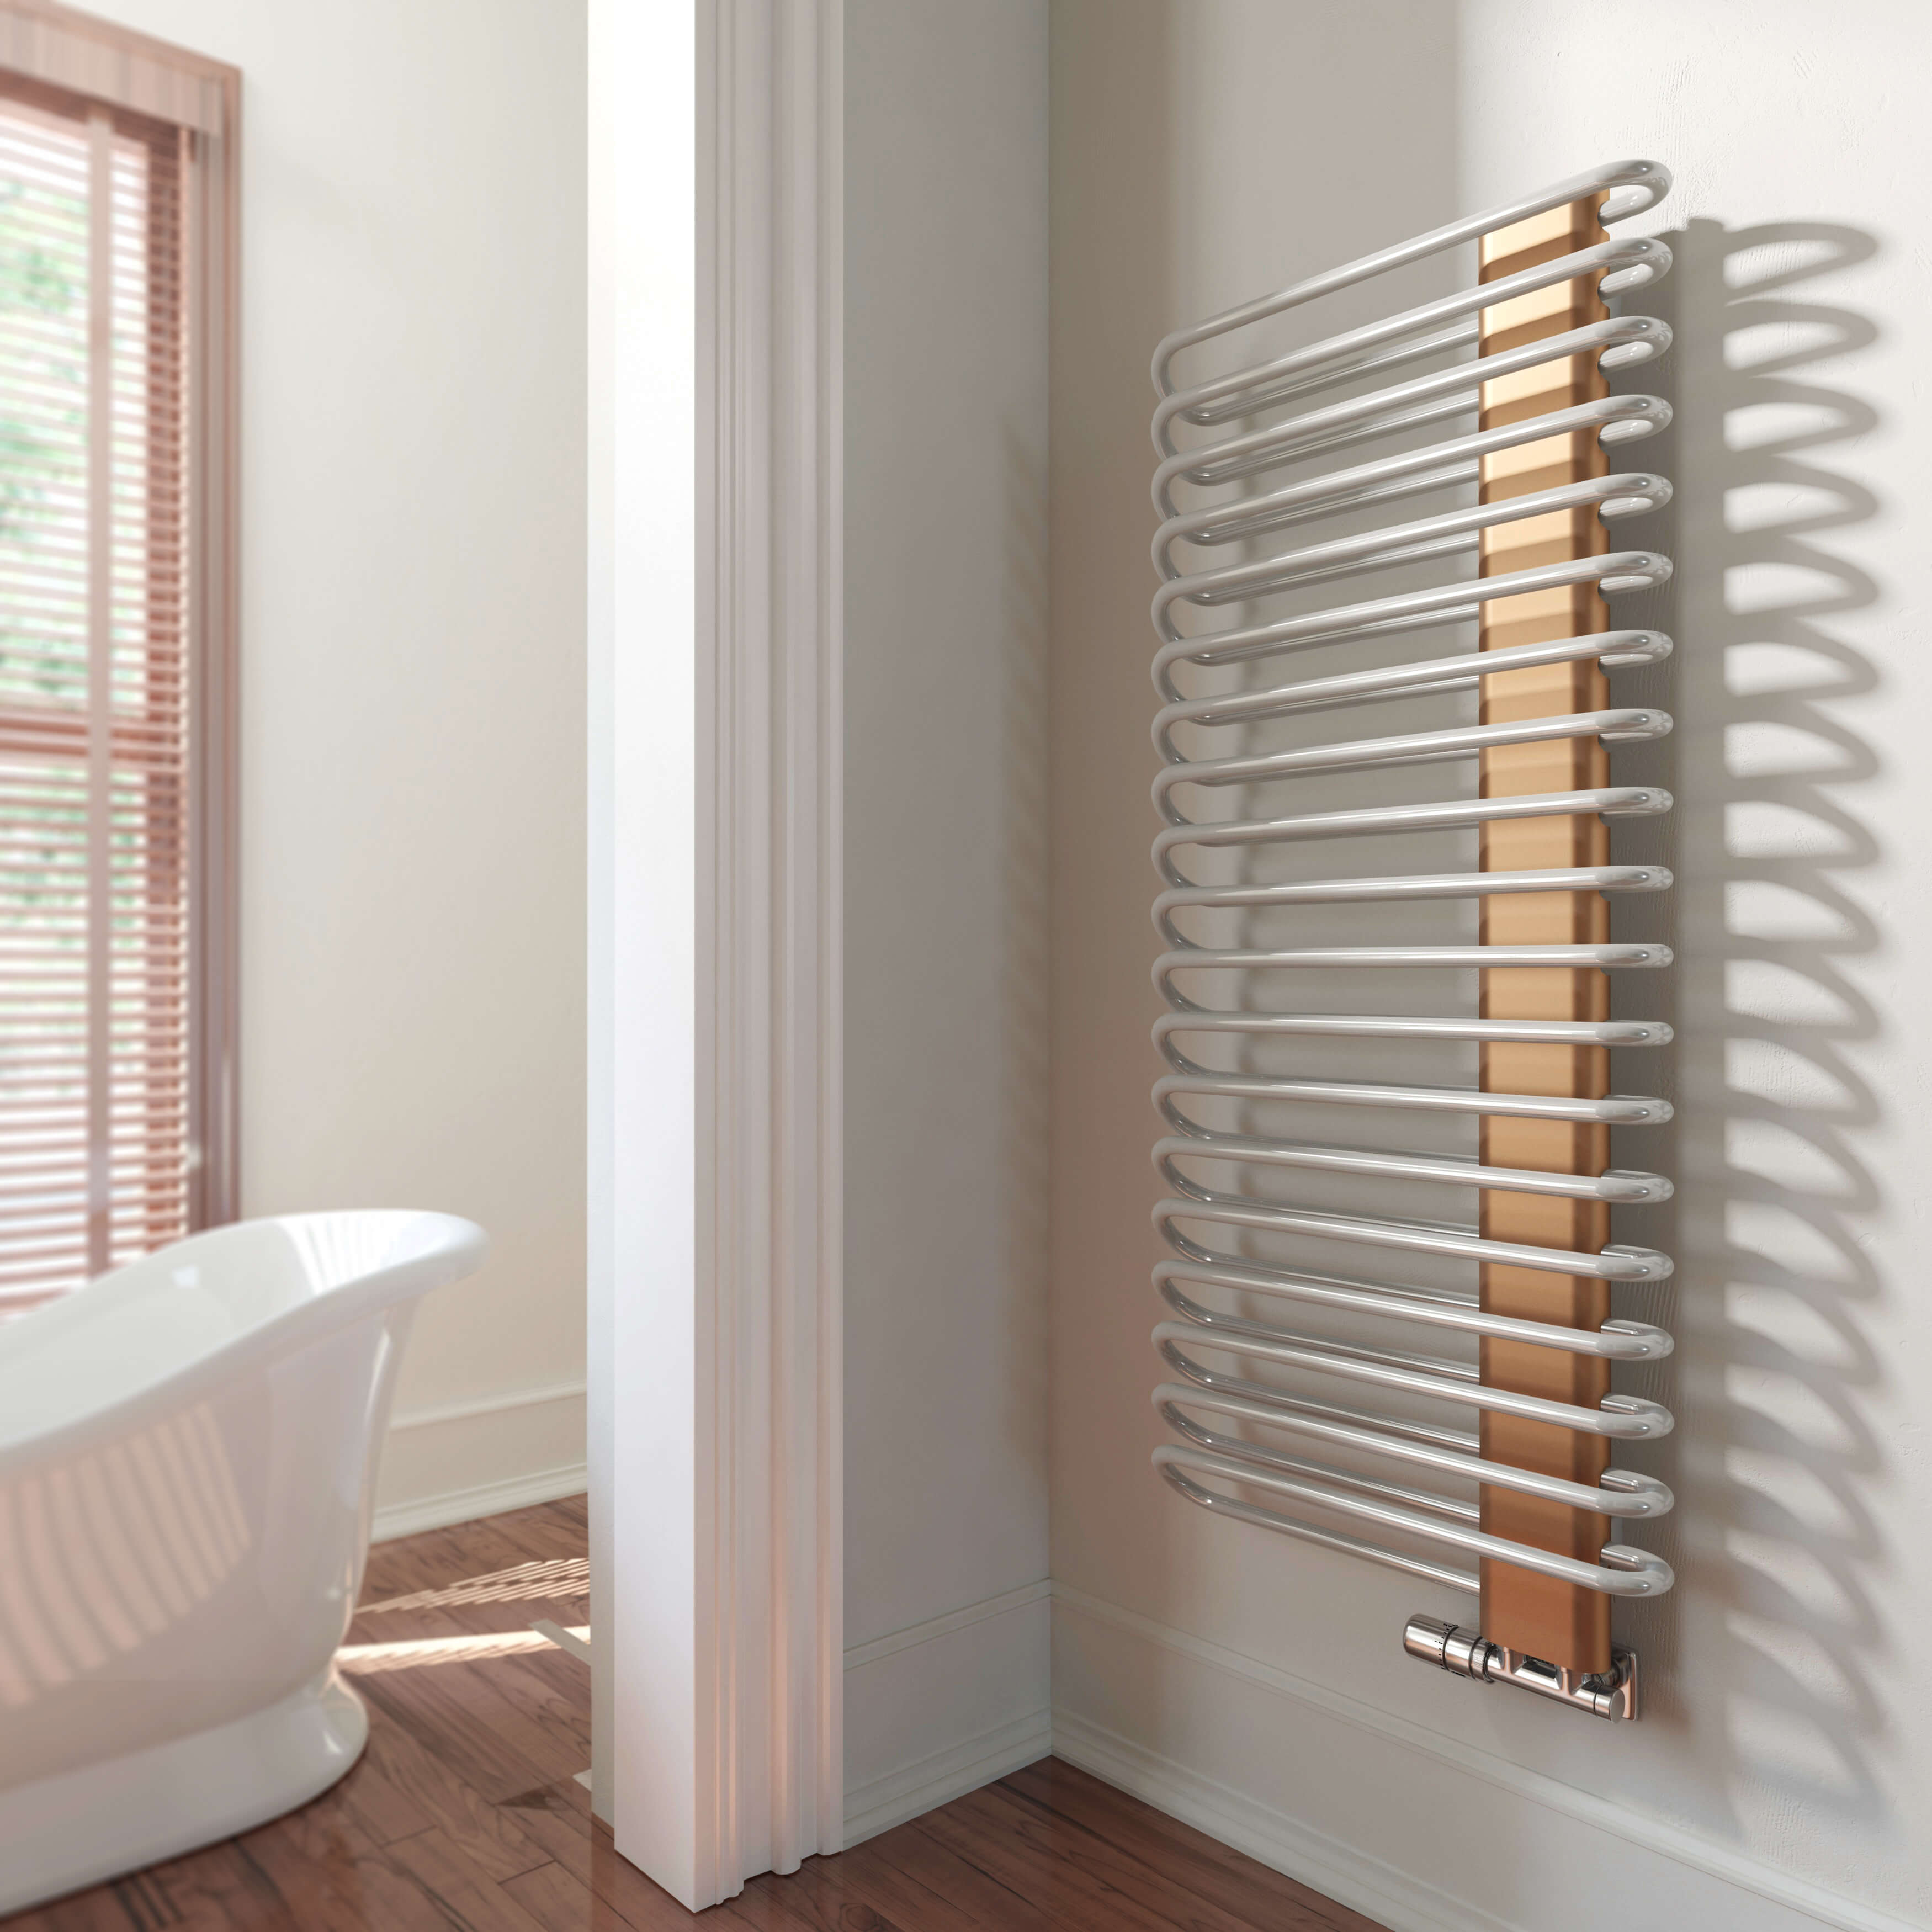 Terma Michelle Towel Rail The Designer Radiator Company